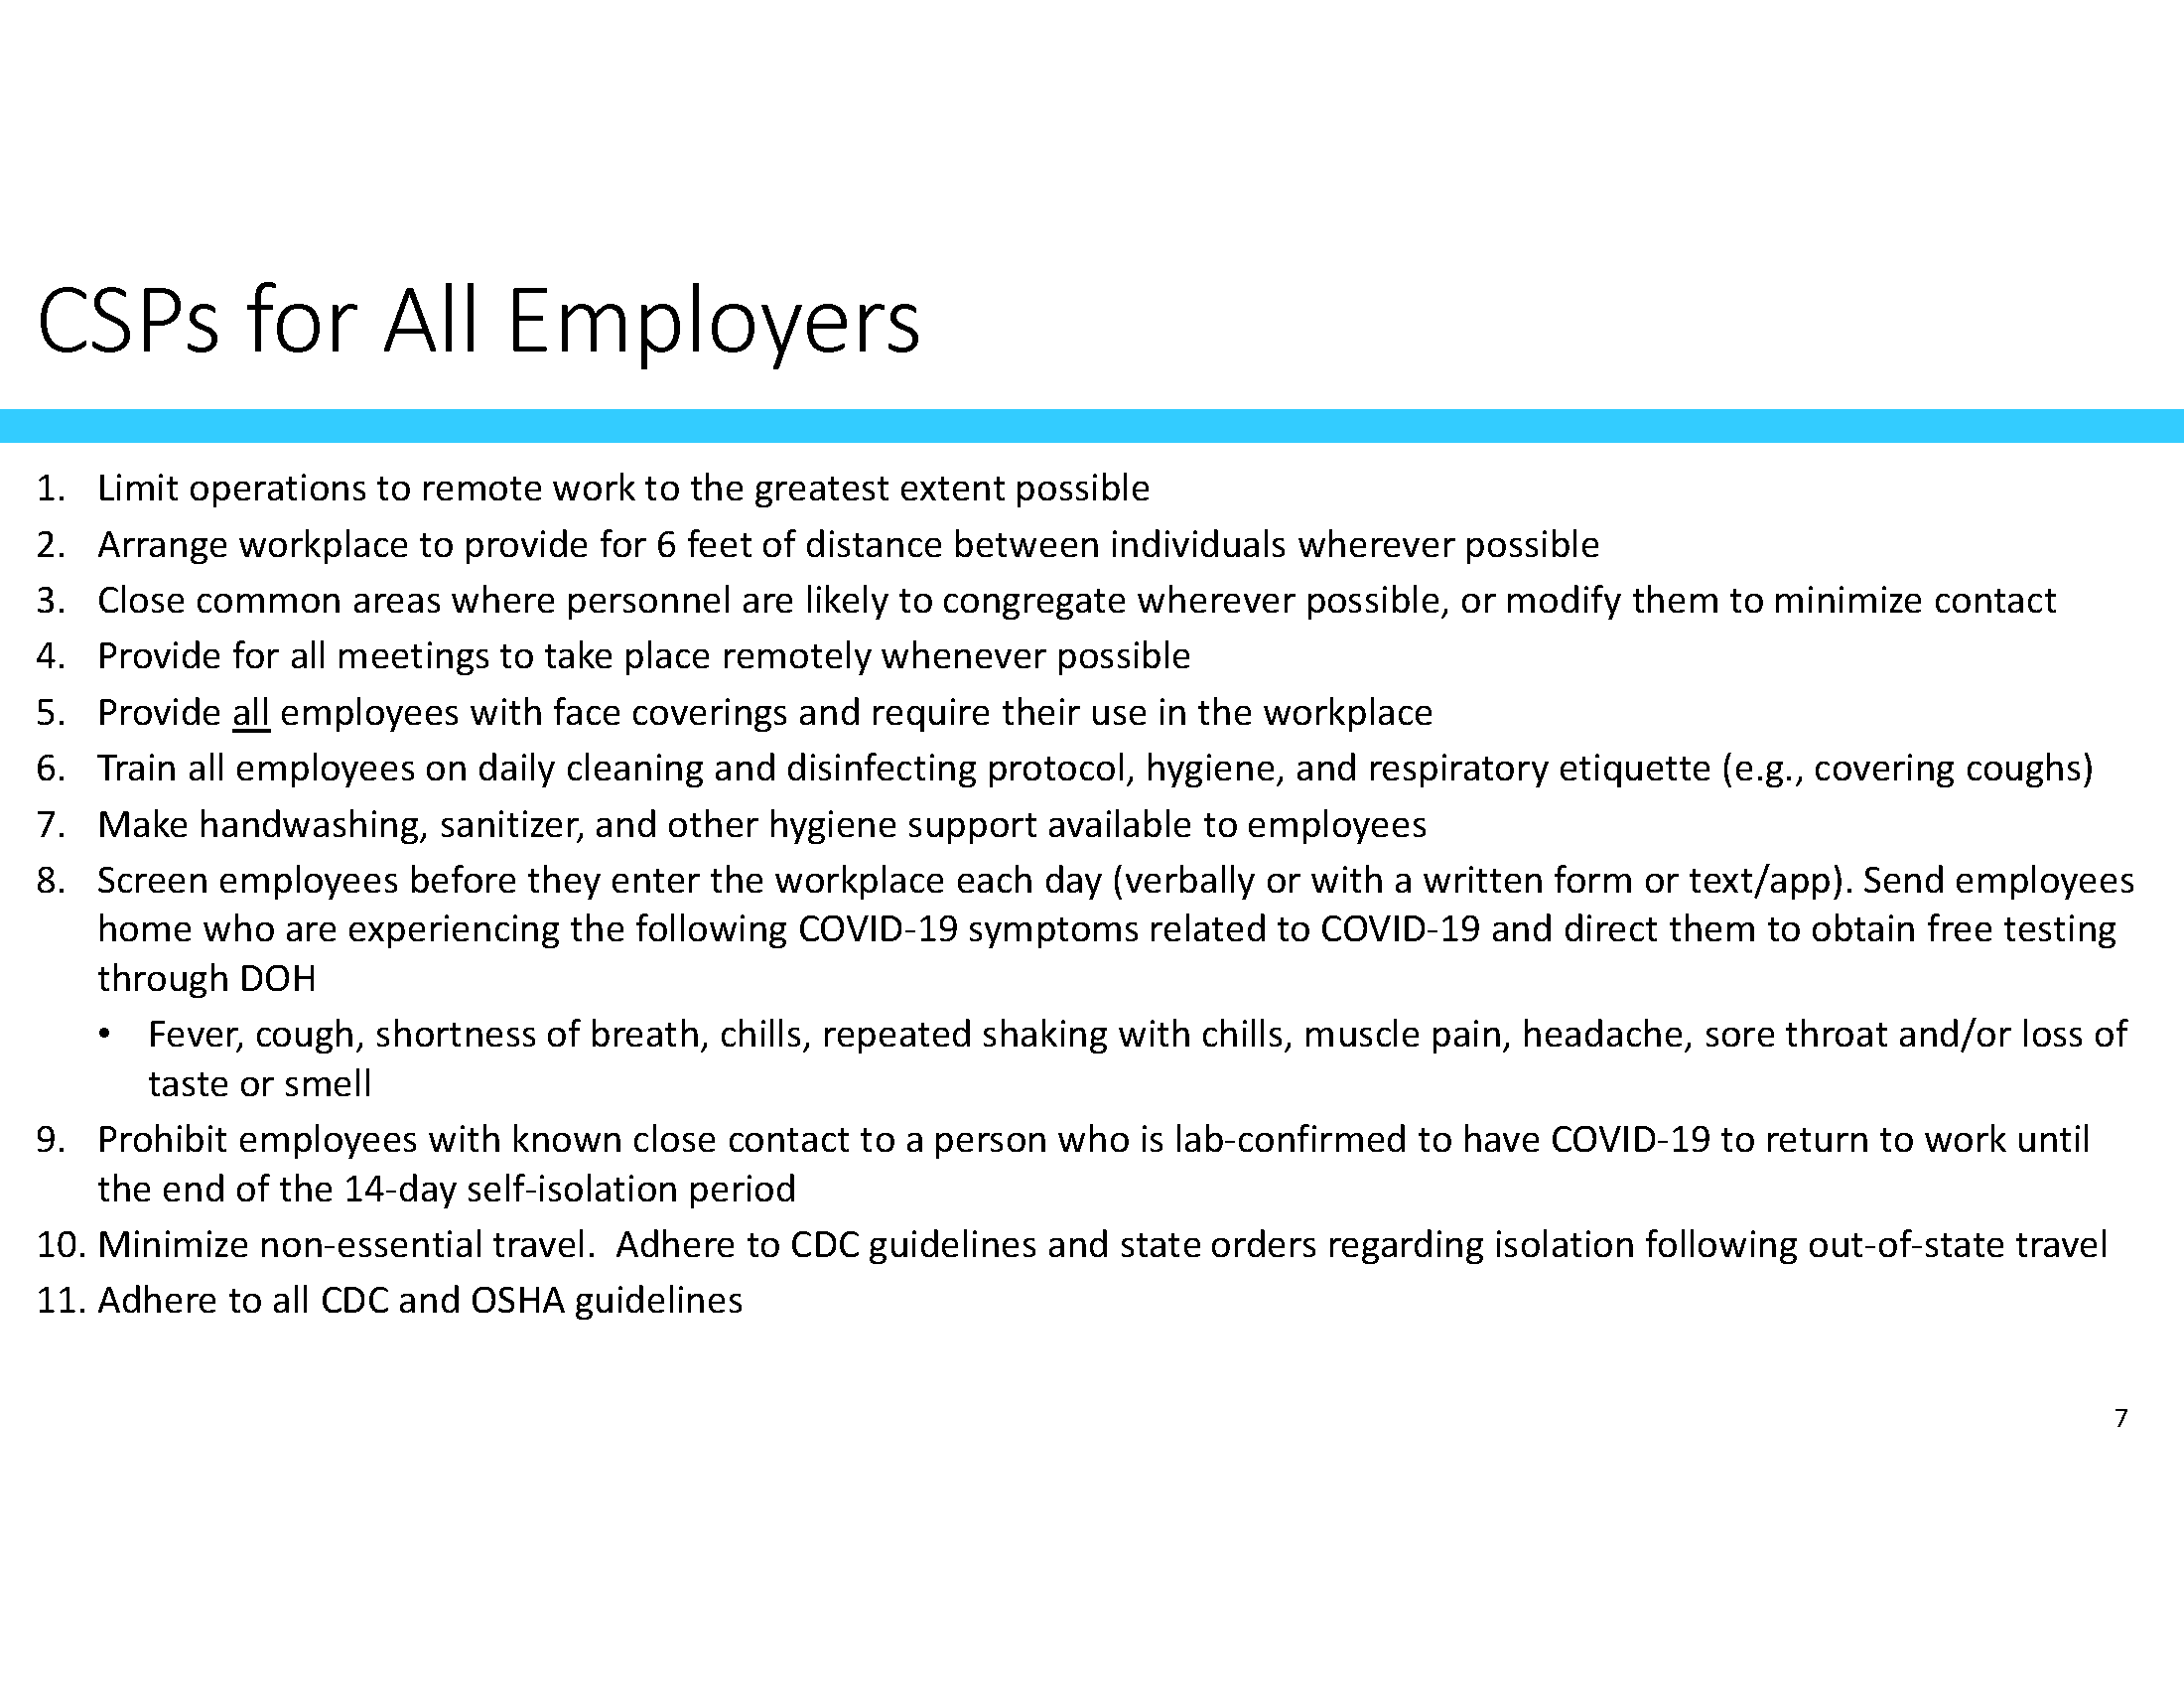 CSP for all employers